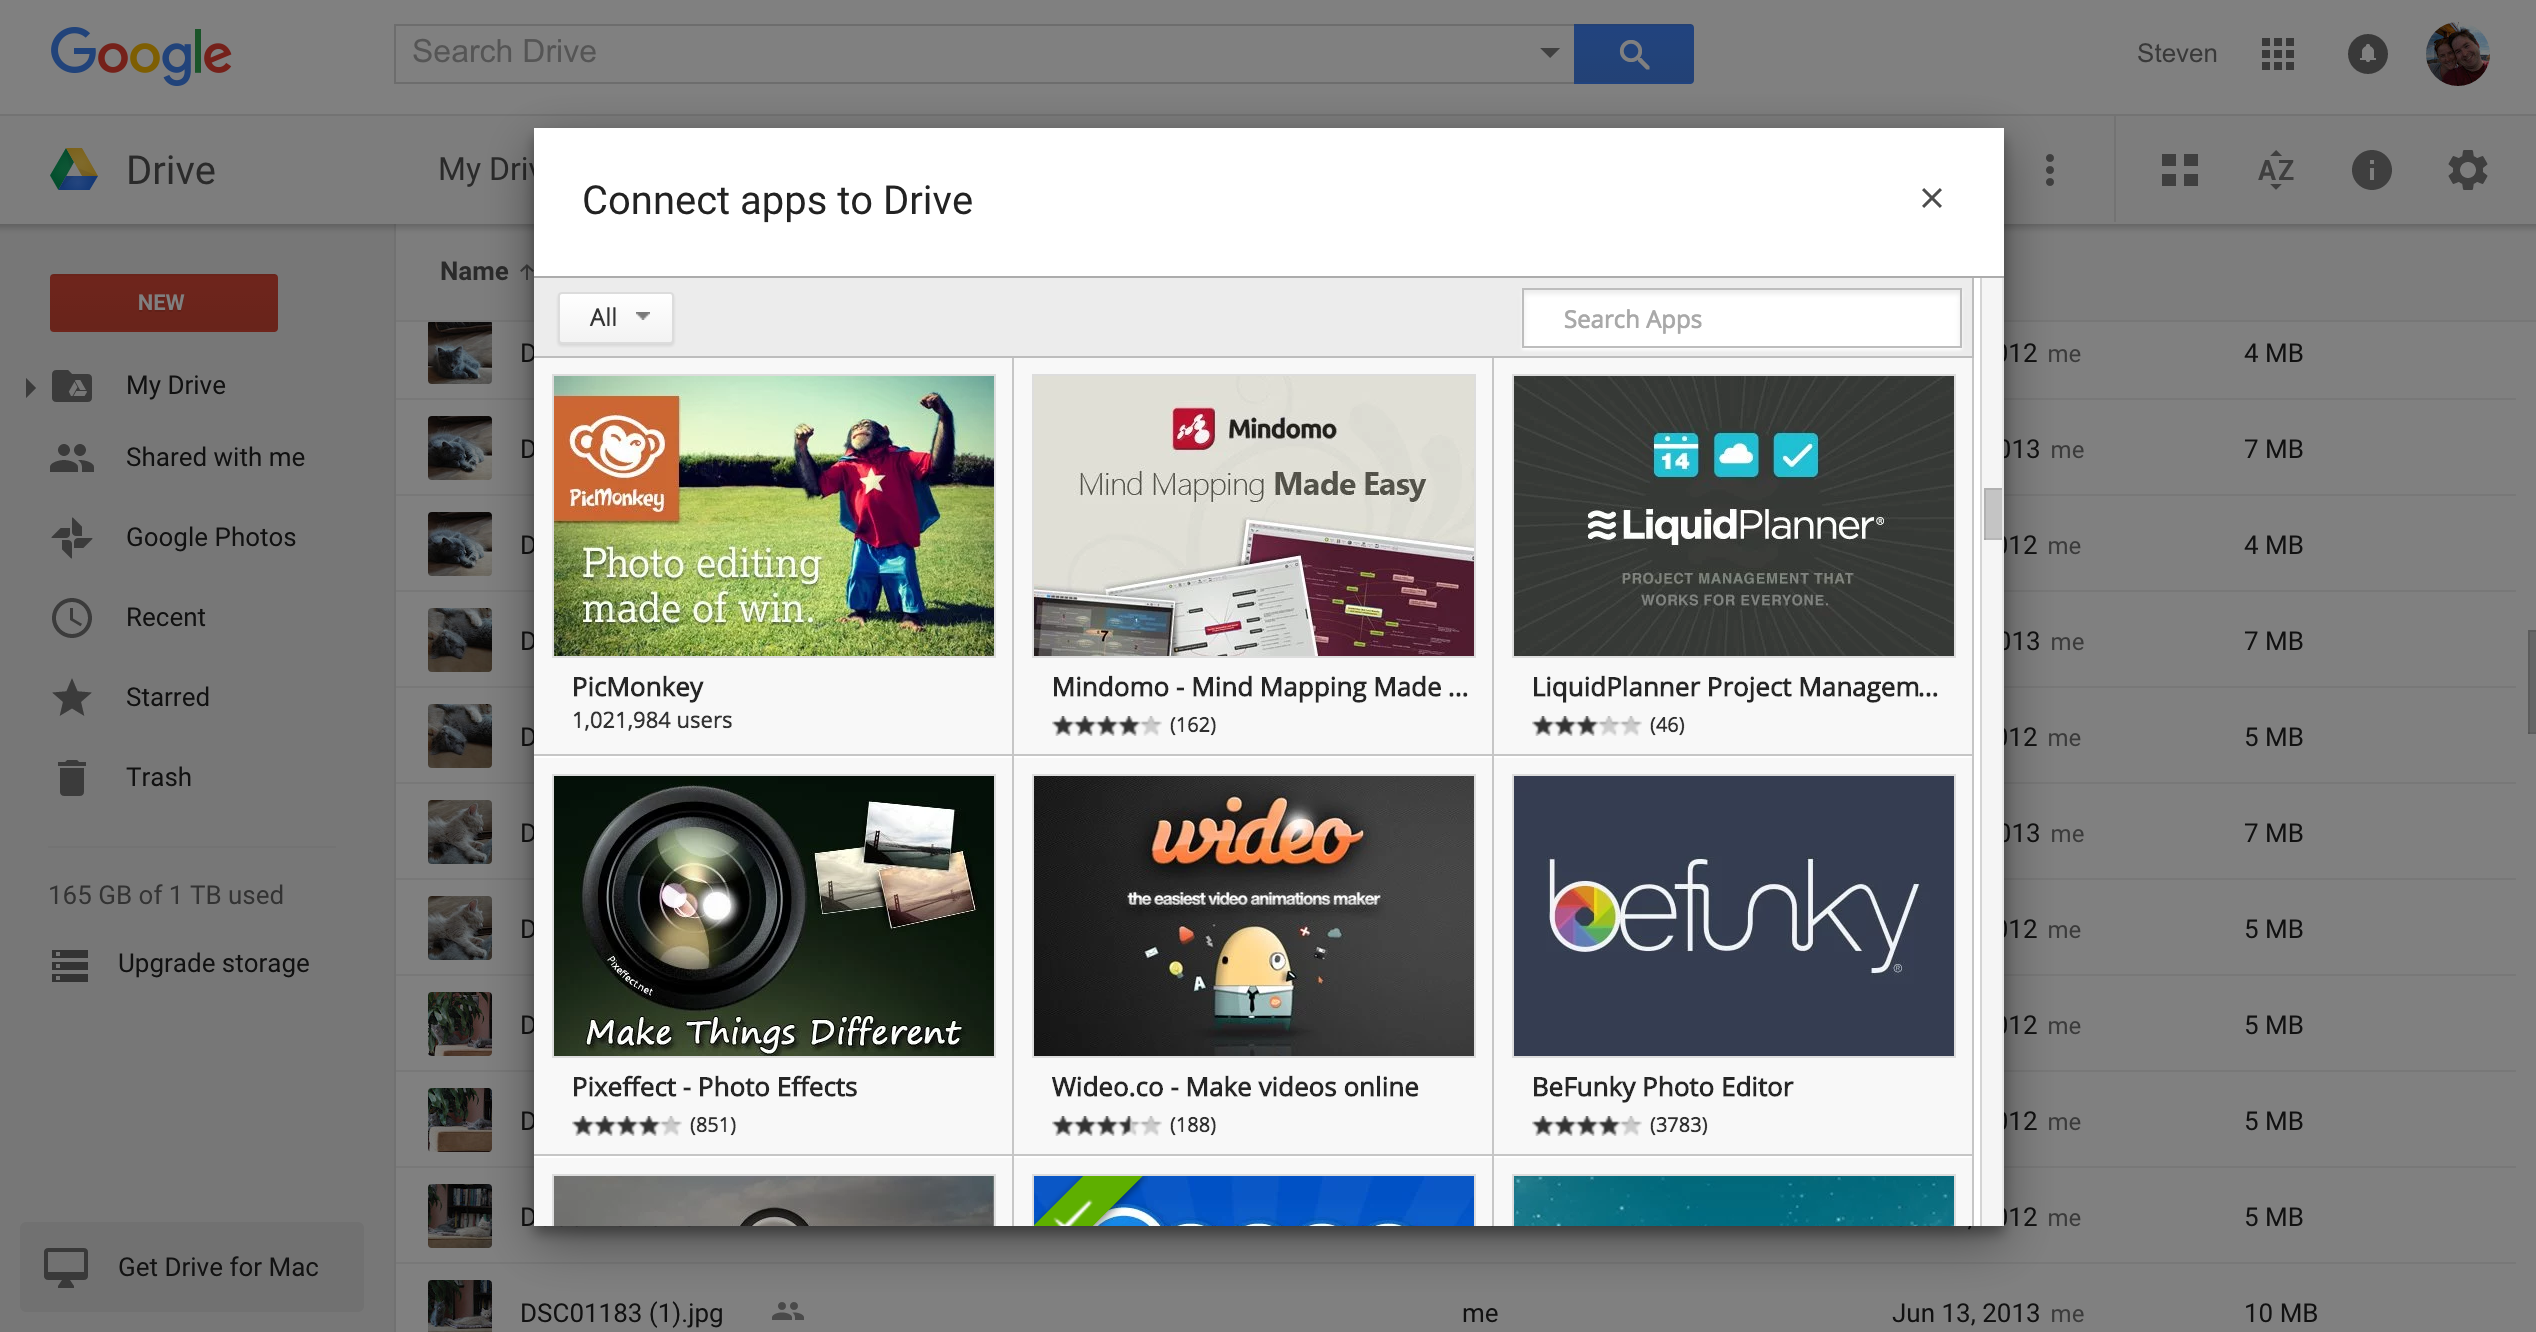 Chrome Web Store list of Drive apps